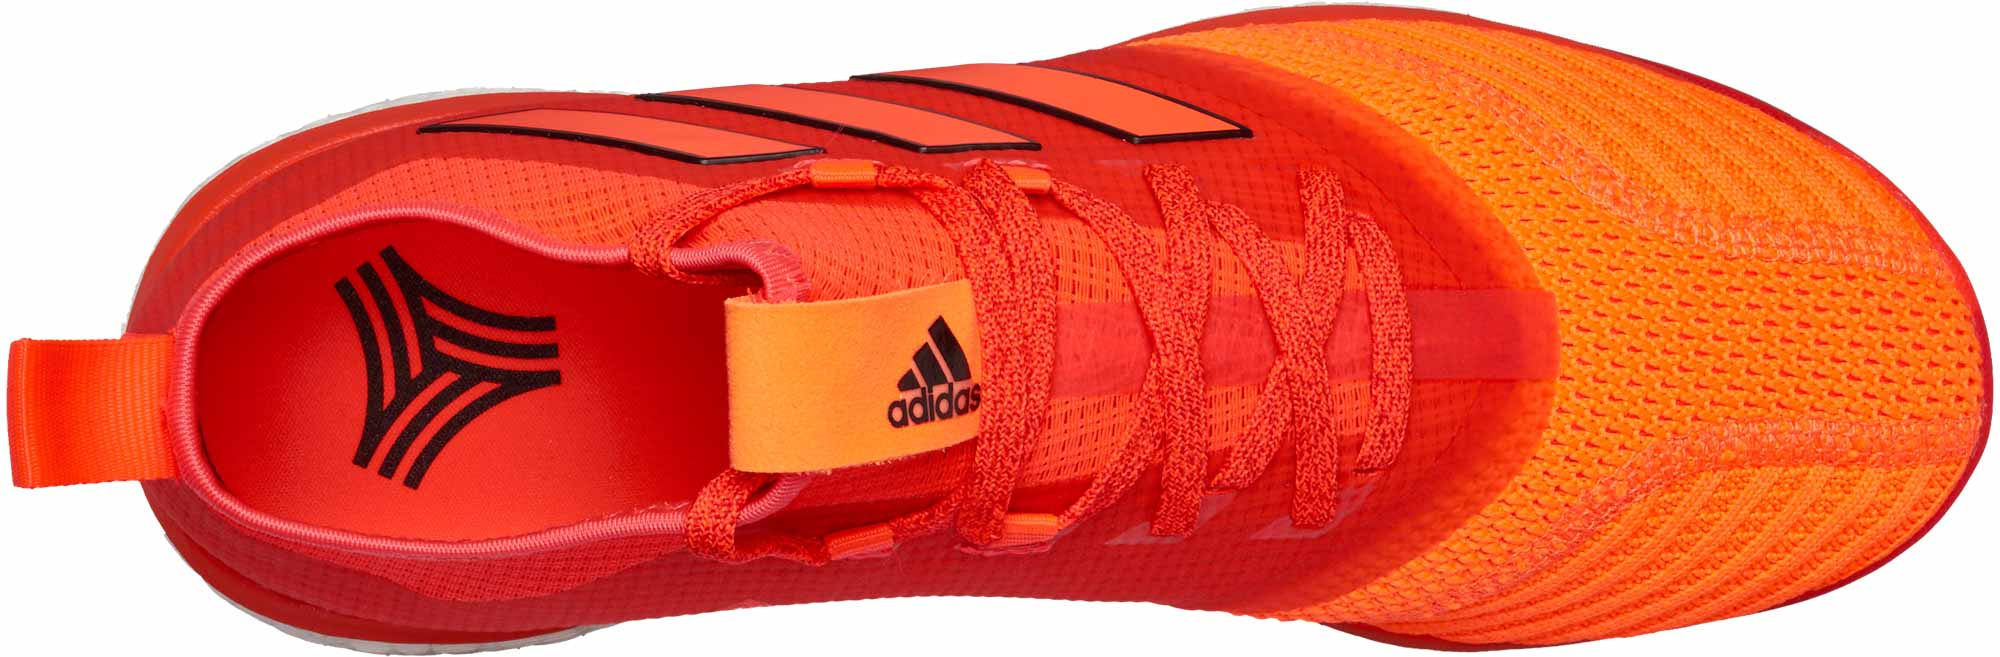 0e8196a24dc6 adidas ACE Tango 17.1 Trainer – Solar Red/Solar Orange